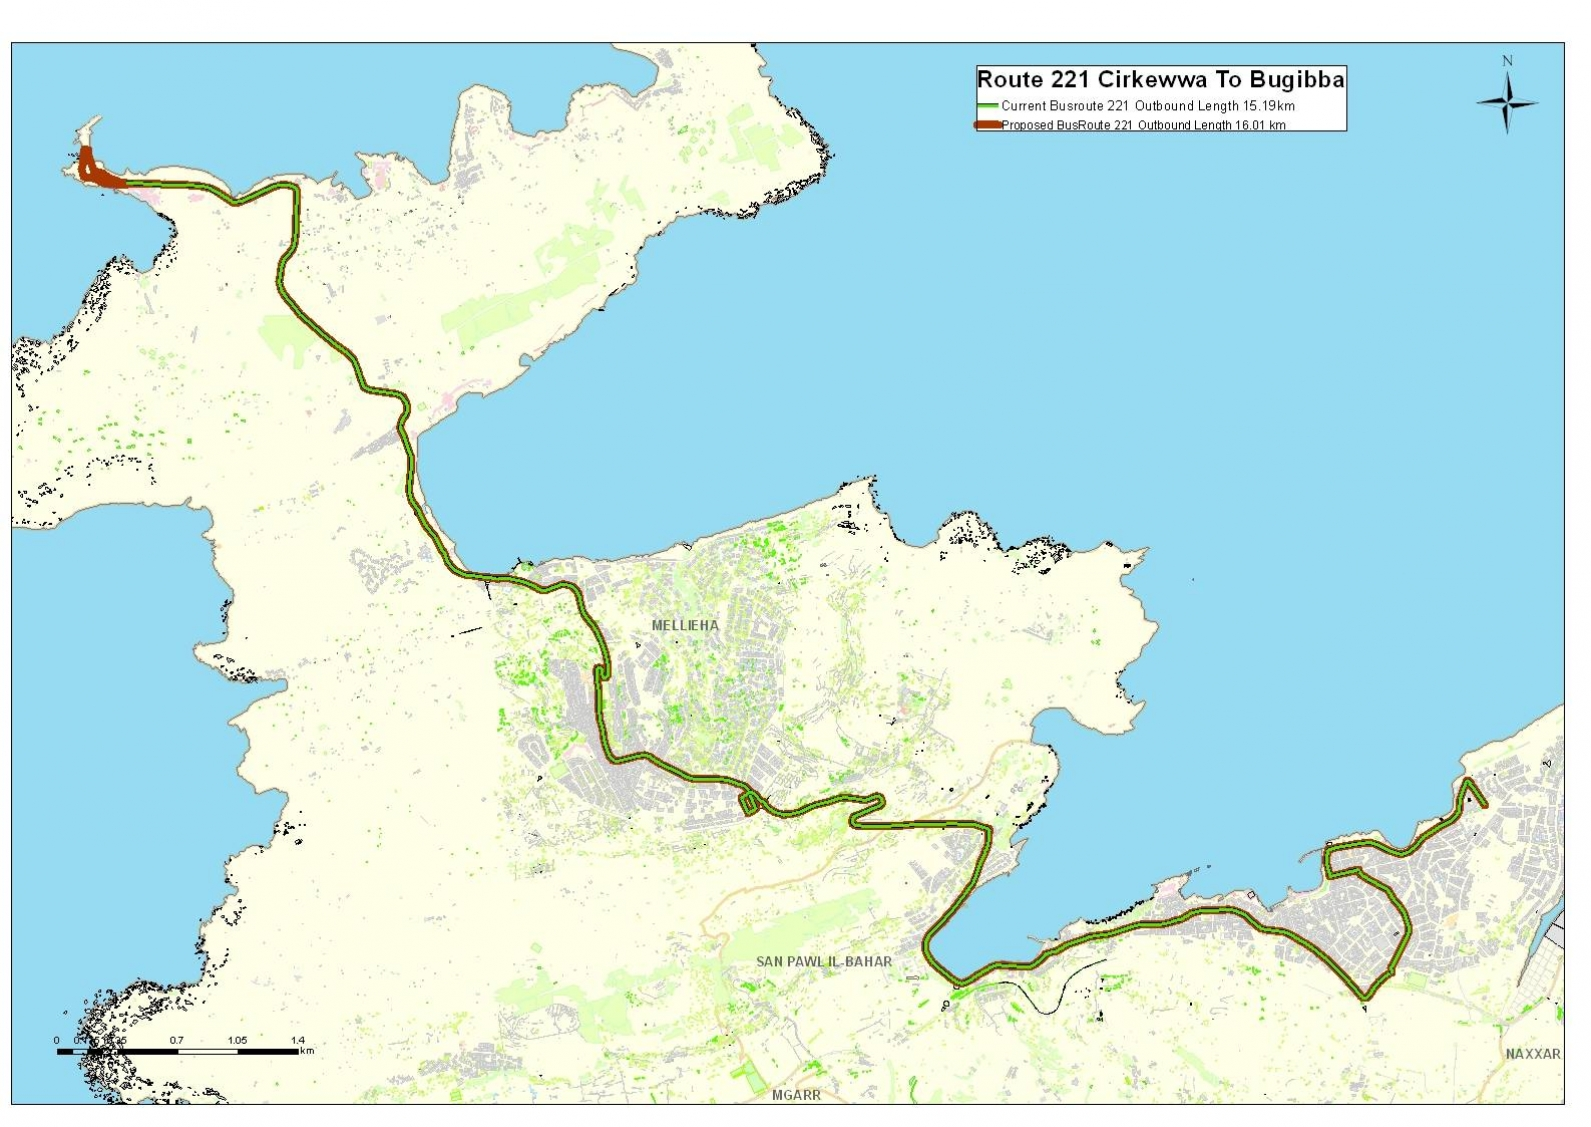 Land-current-network-routes-and-schedules-Cirkewwa-mellieha-sliema-10